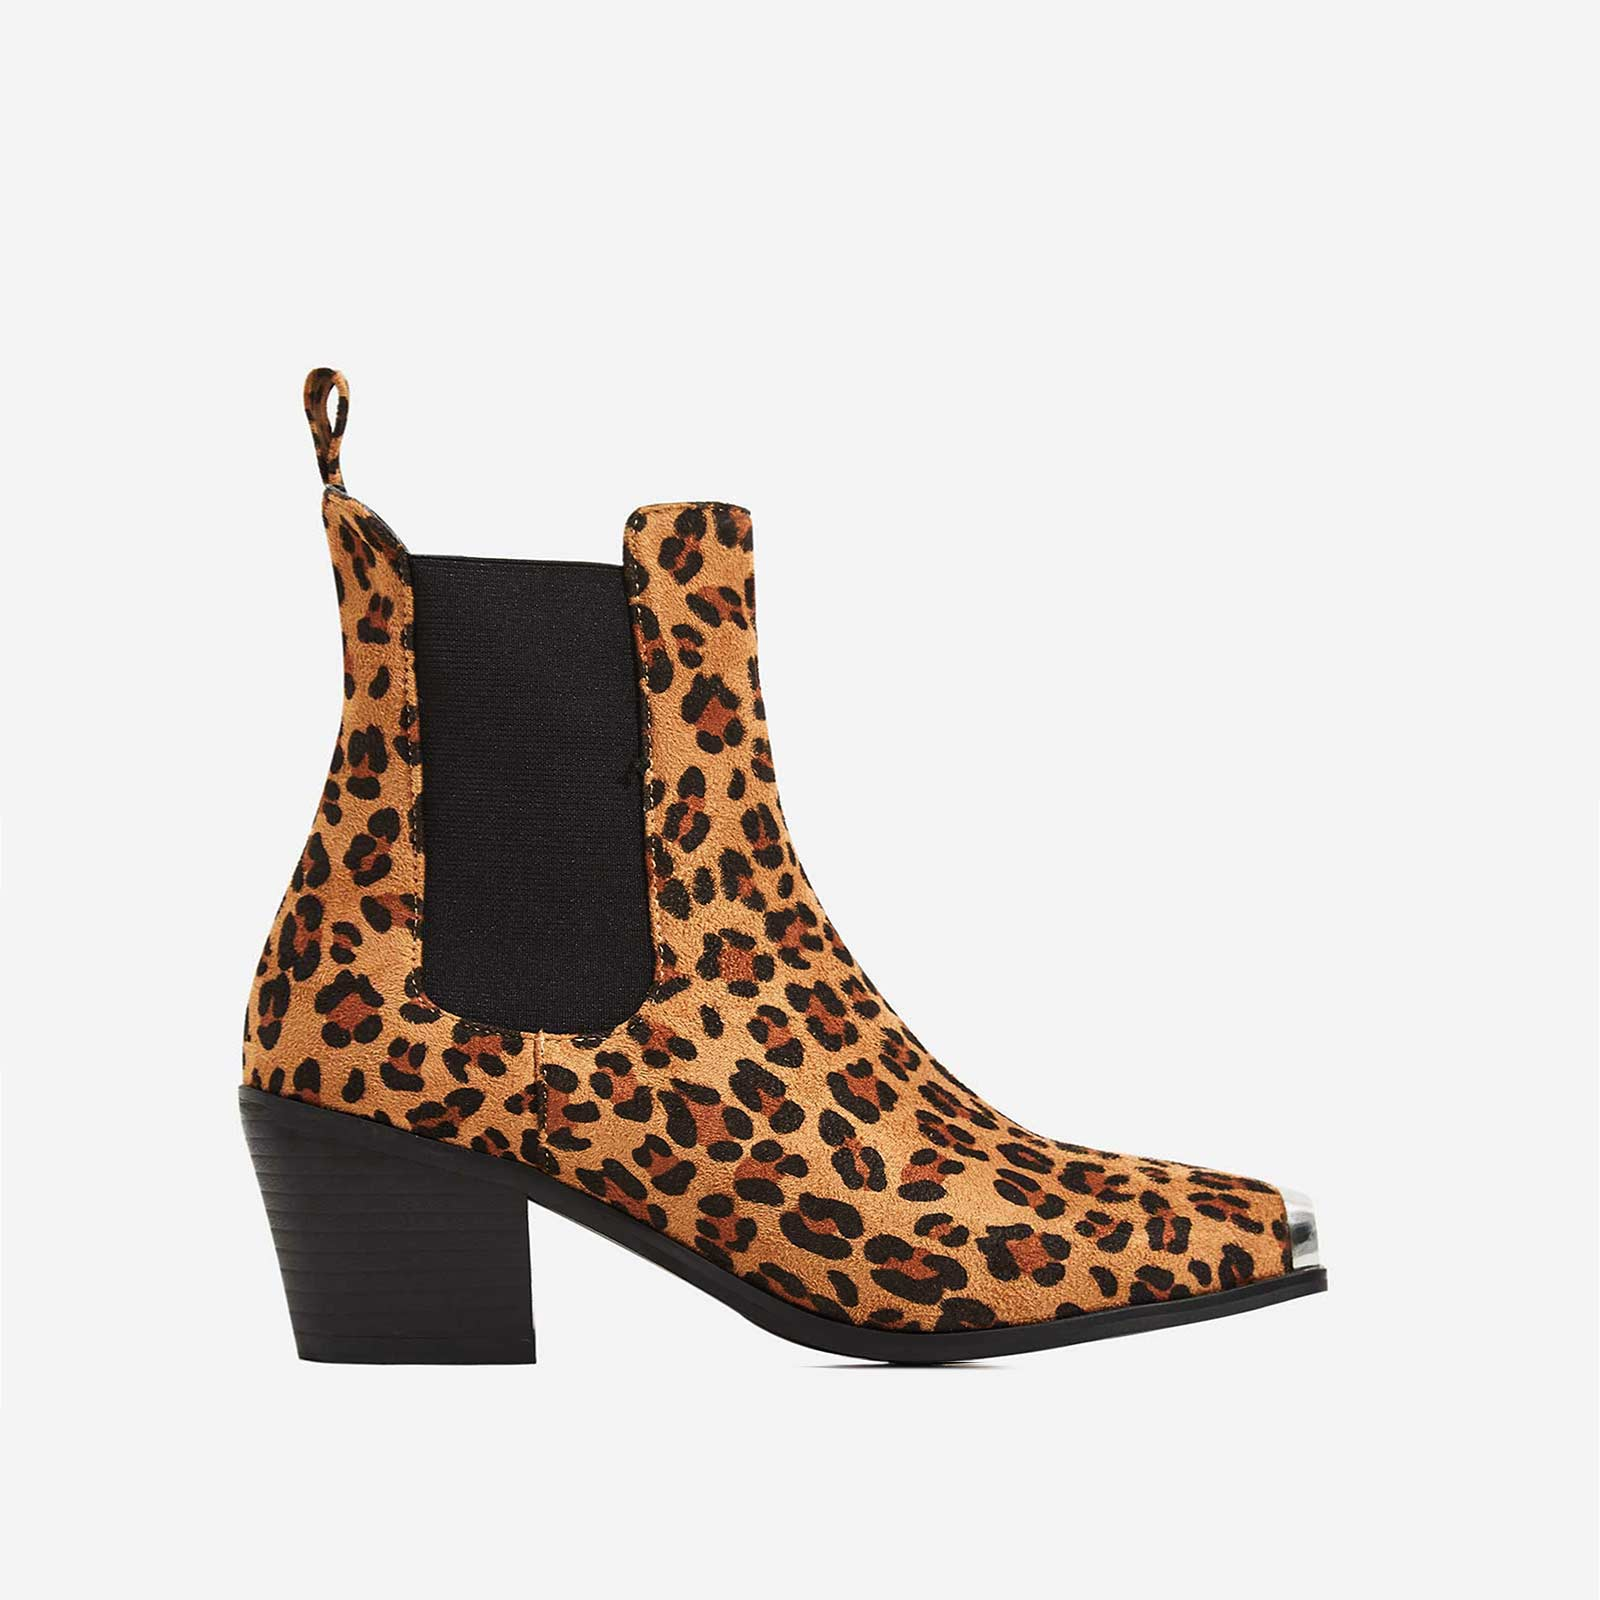 Darcy Toe Cap Western Ankle Boot In Tan Leopard Print Faux Suede